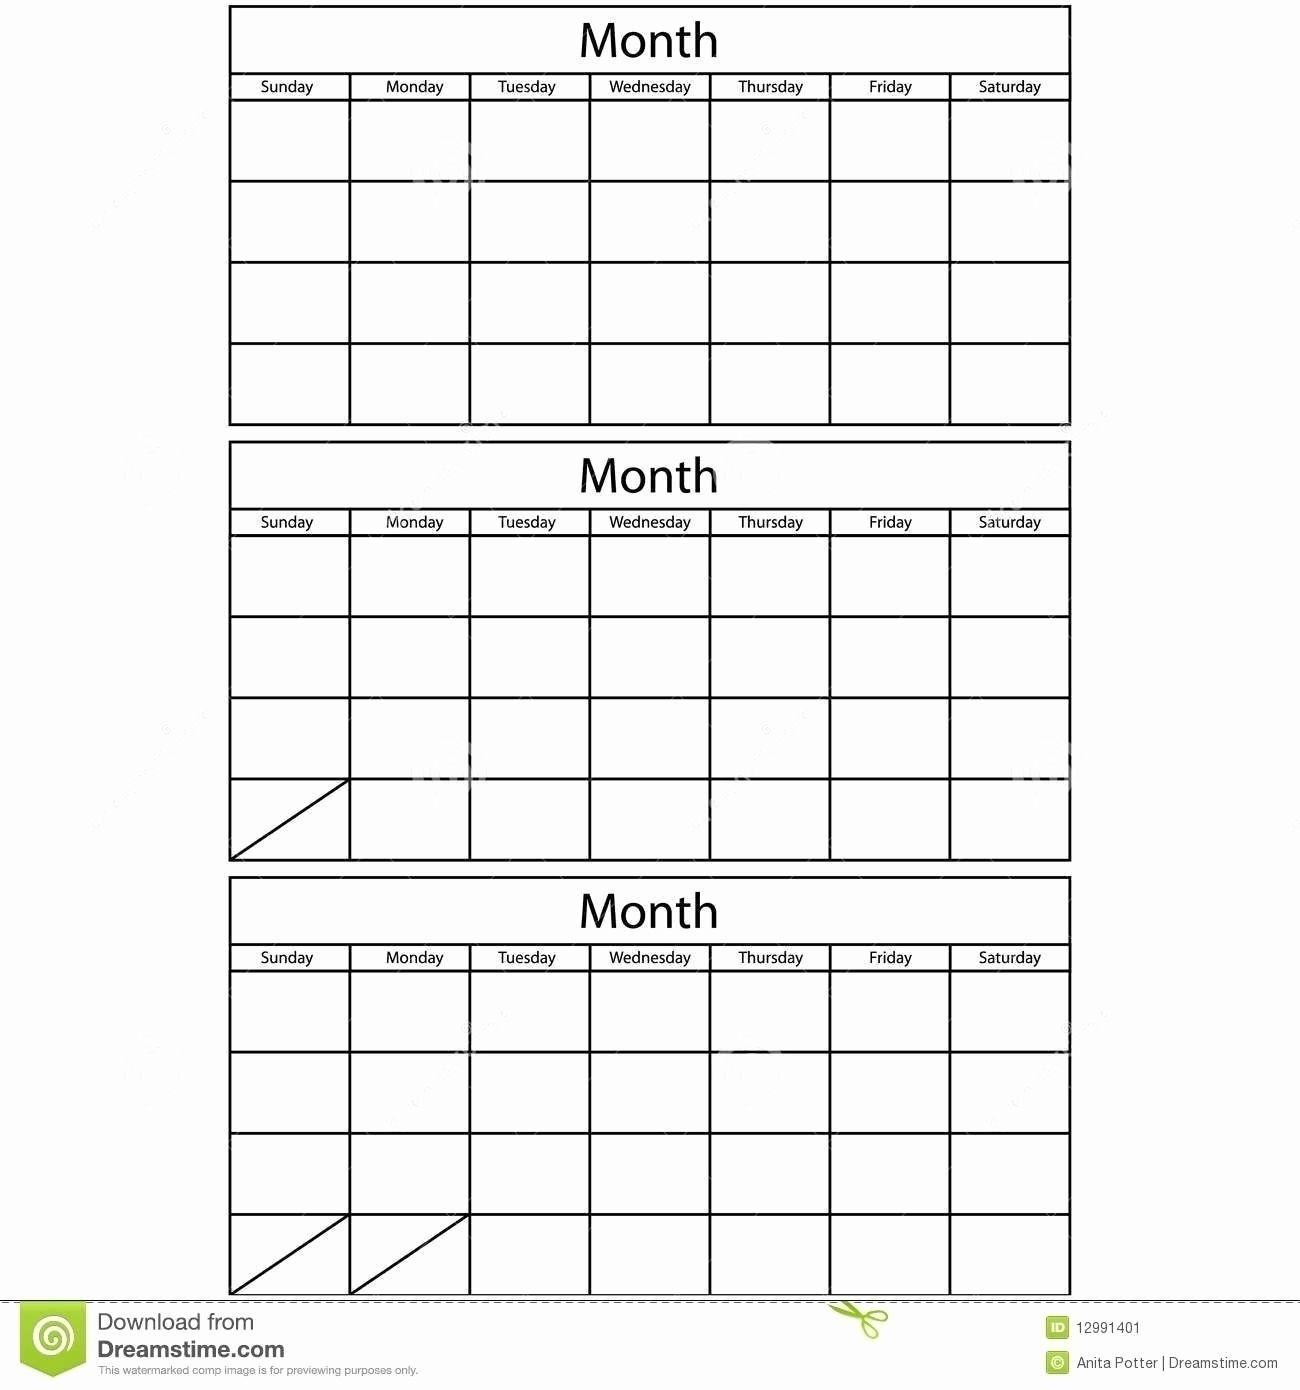 Printable 3 Month Calendar Template - Calendar Inspiration